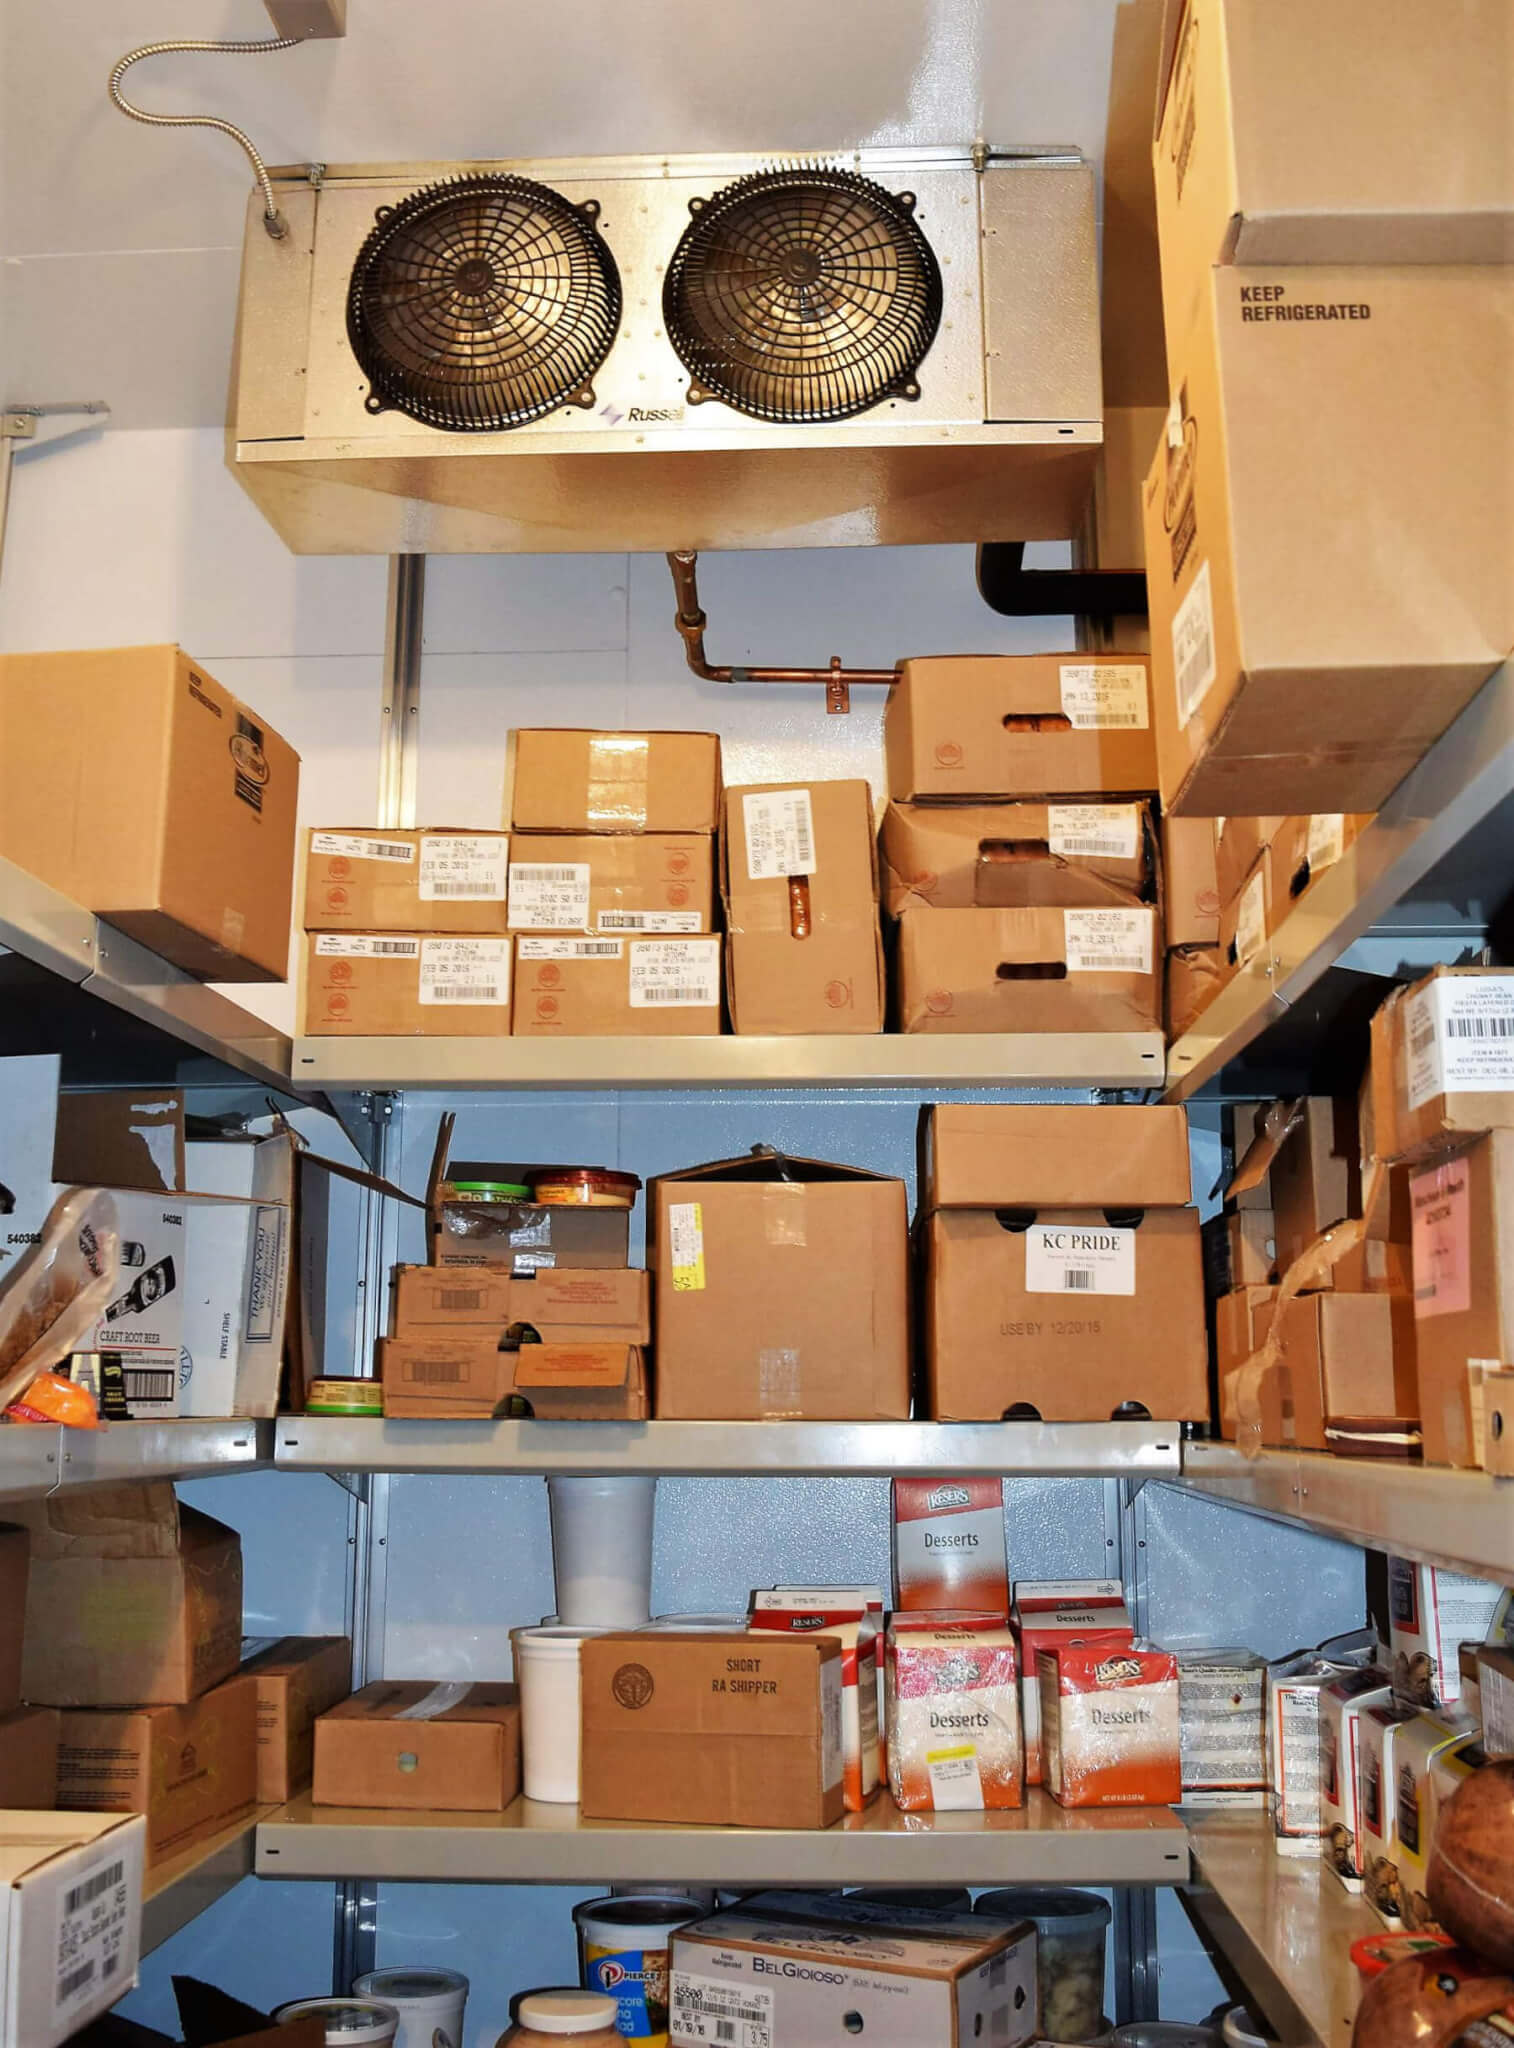 Cantilever Shelving for a Deli Cooler by E-Z Shelving Systems, Inc. - 12-Foot Ceilings